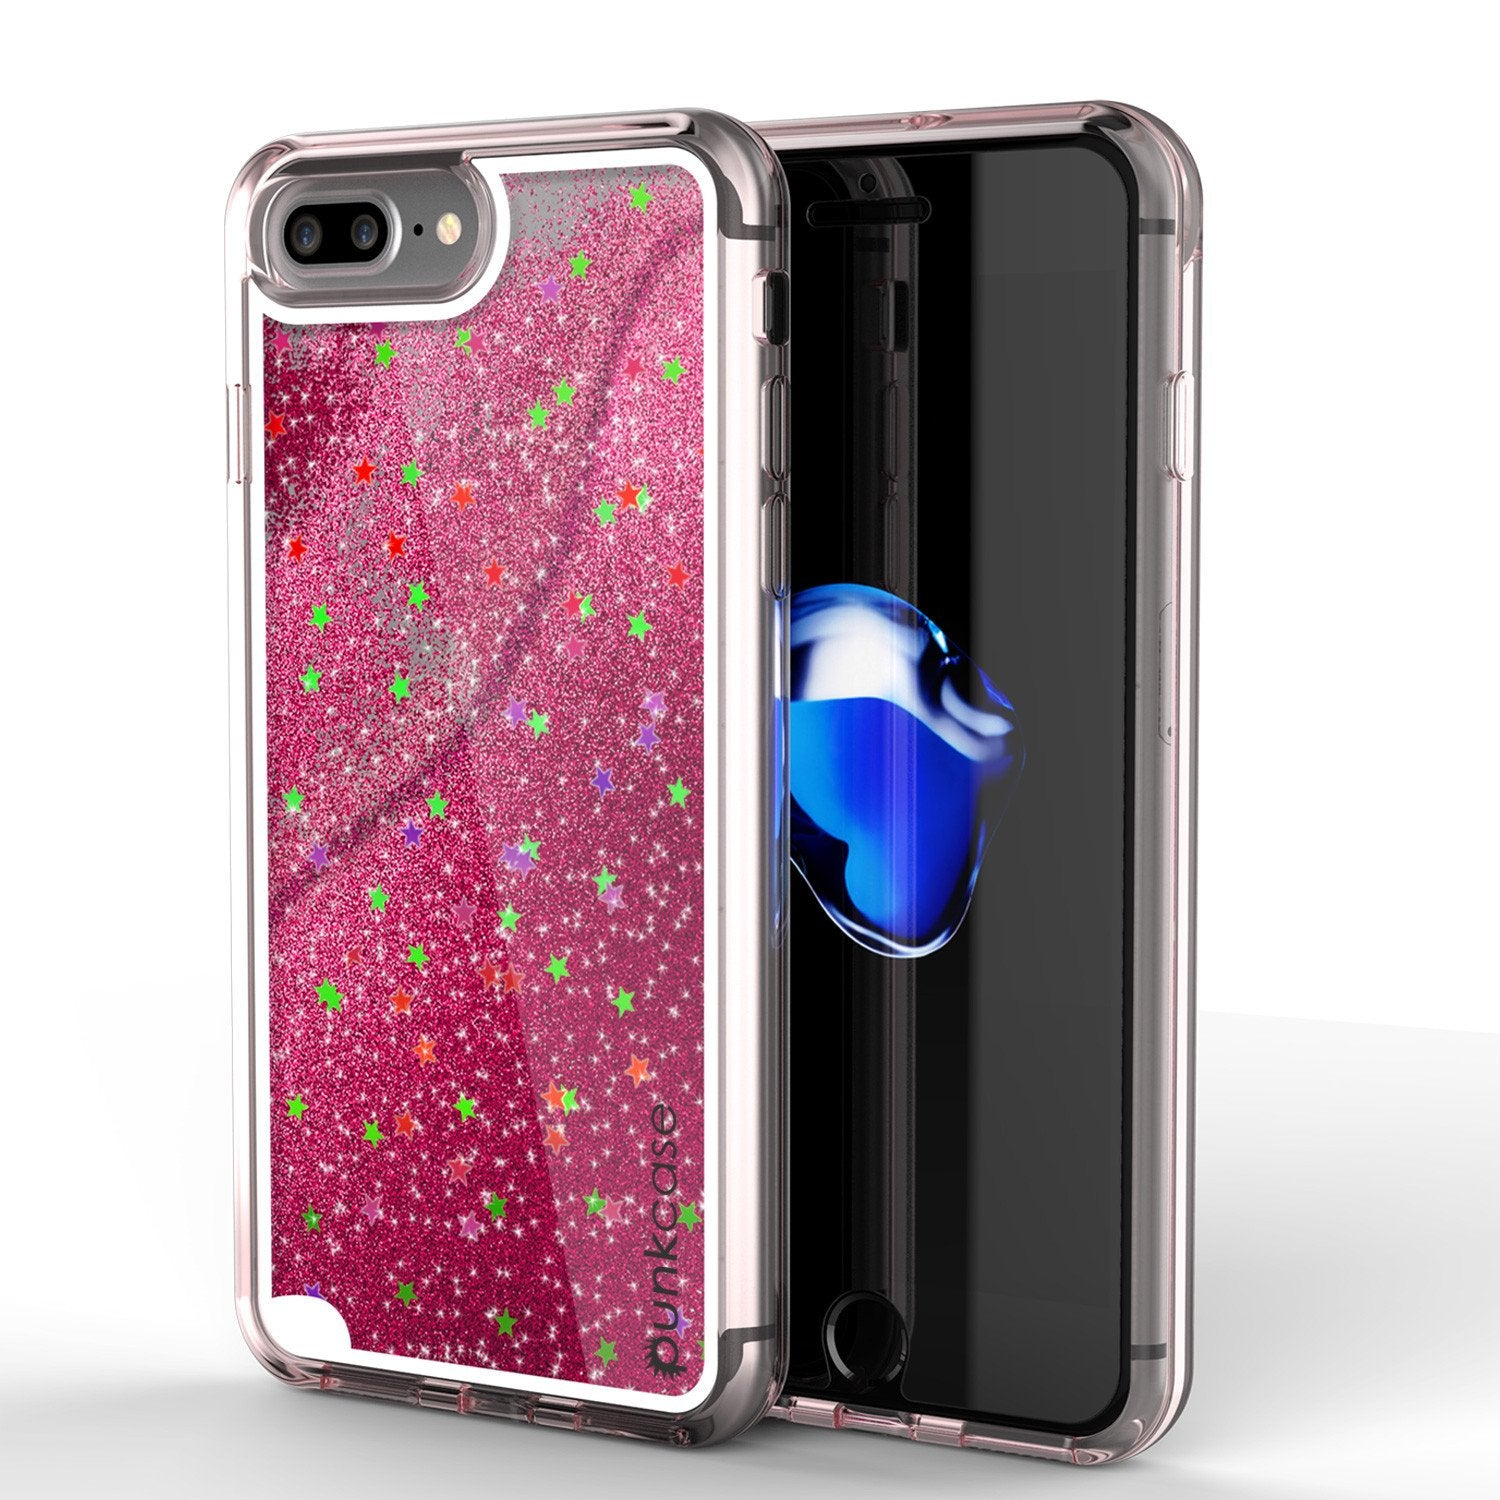 iPhone 7 Plus Case, PunkCase LIQUID Pink Series, Protective Dual Layer Floating Glitter Cover